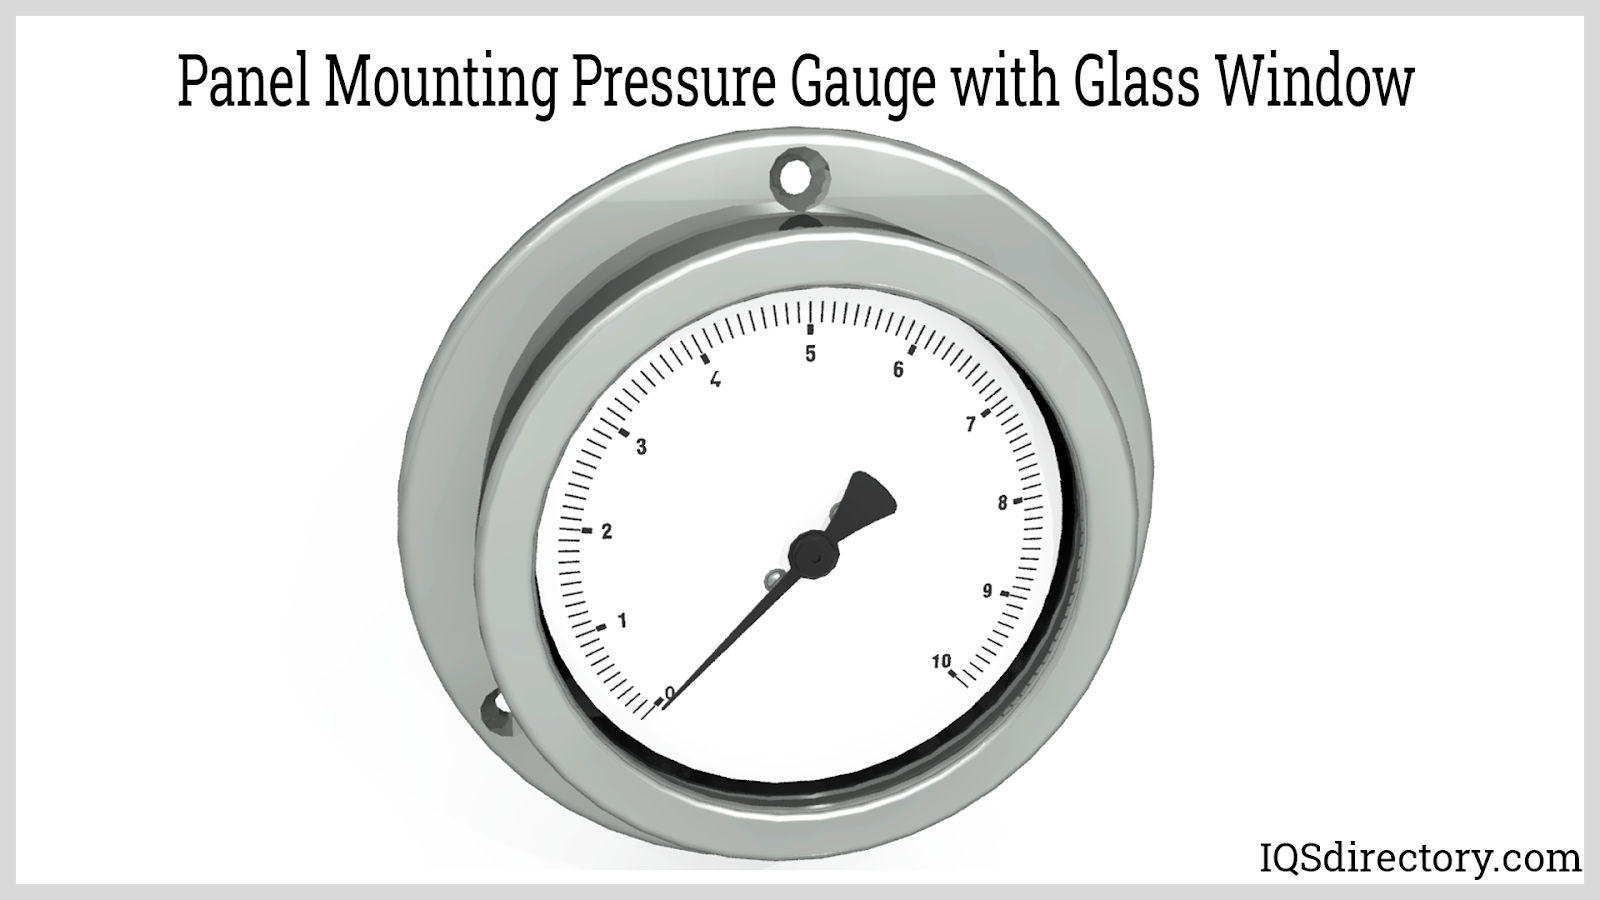 Panel Mounting Pressure Gauge with Glass Window